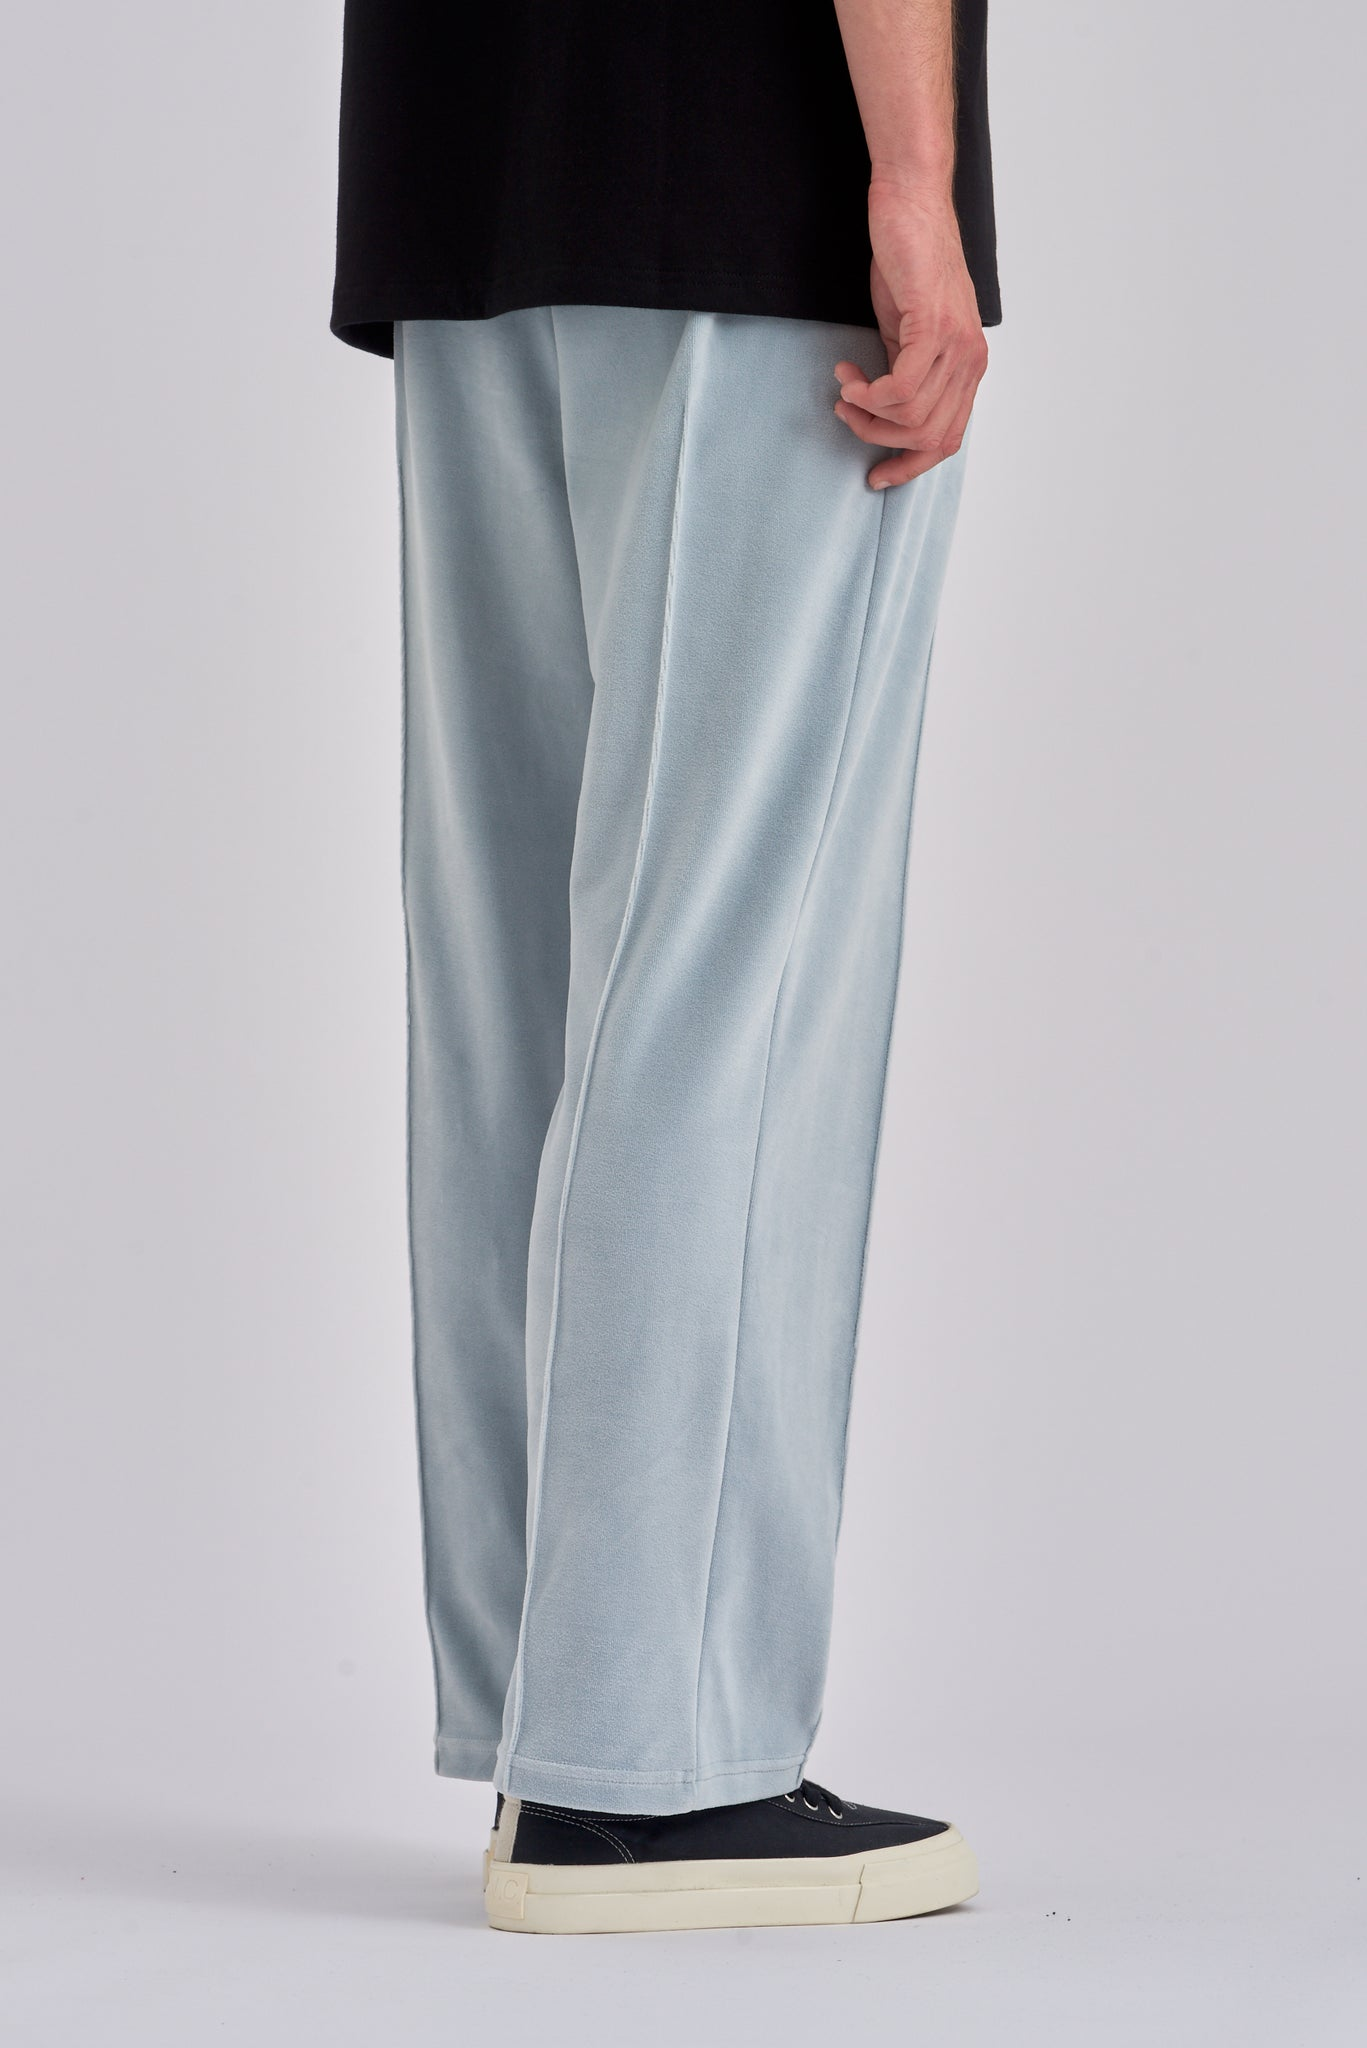 Packer Light Grey Velvet Pants - Arte Antwerp